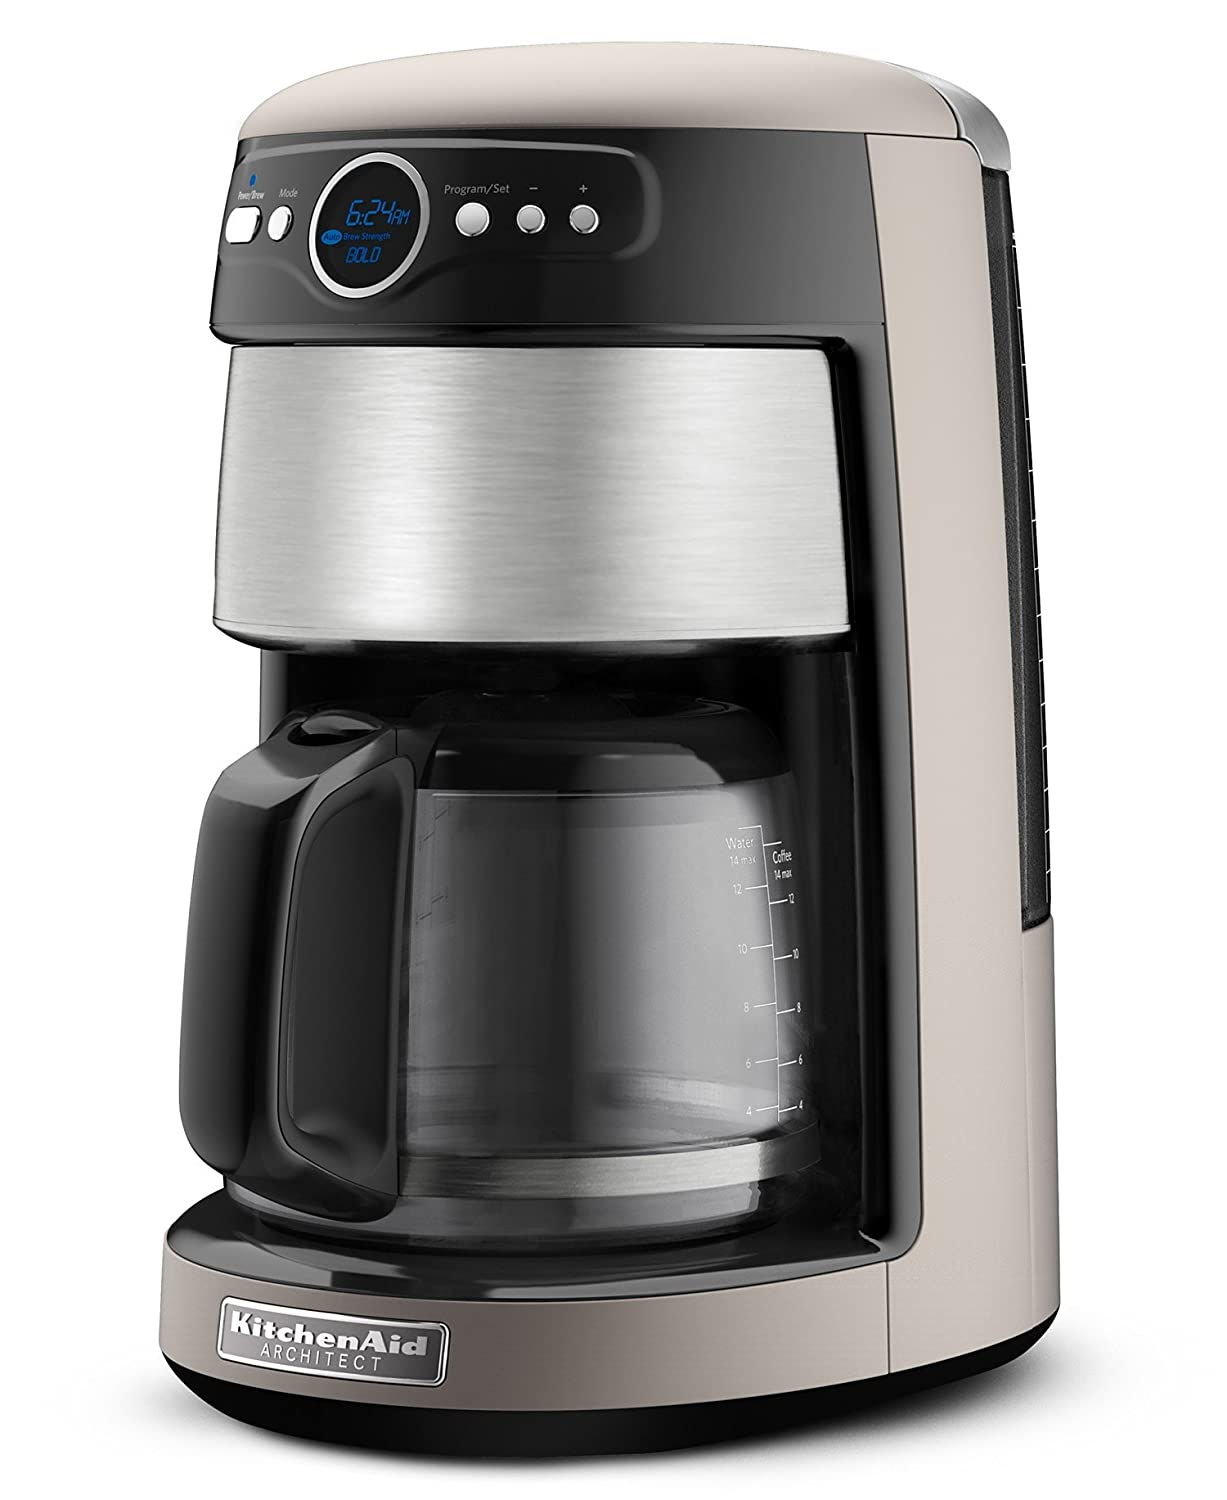 KitchenAid Coffee Maker KCM222CS: The 14 Cup Device for Optimum Flexibility